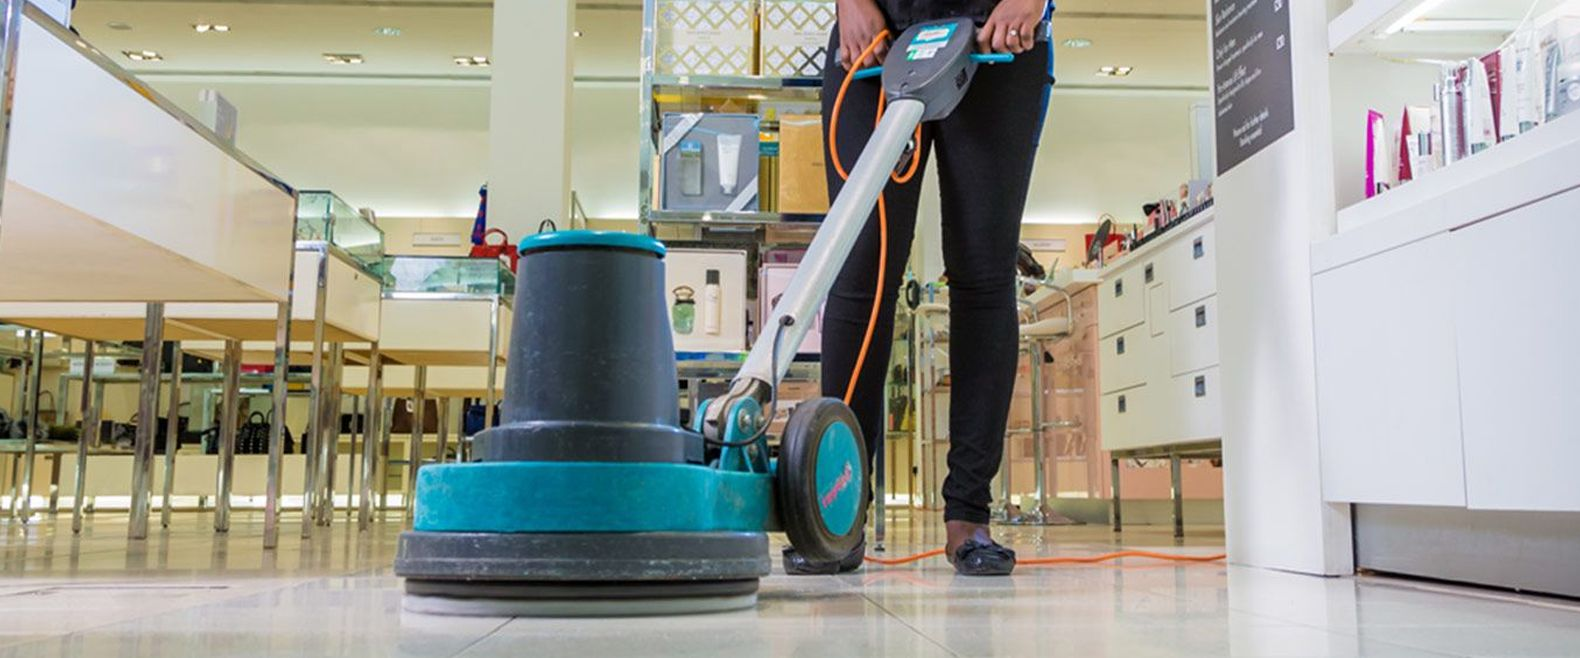 Medical Center Cleaning Is Janitorial Solutions Performed In